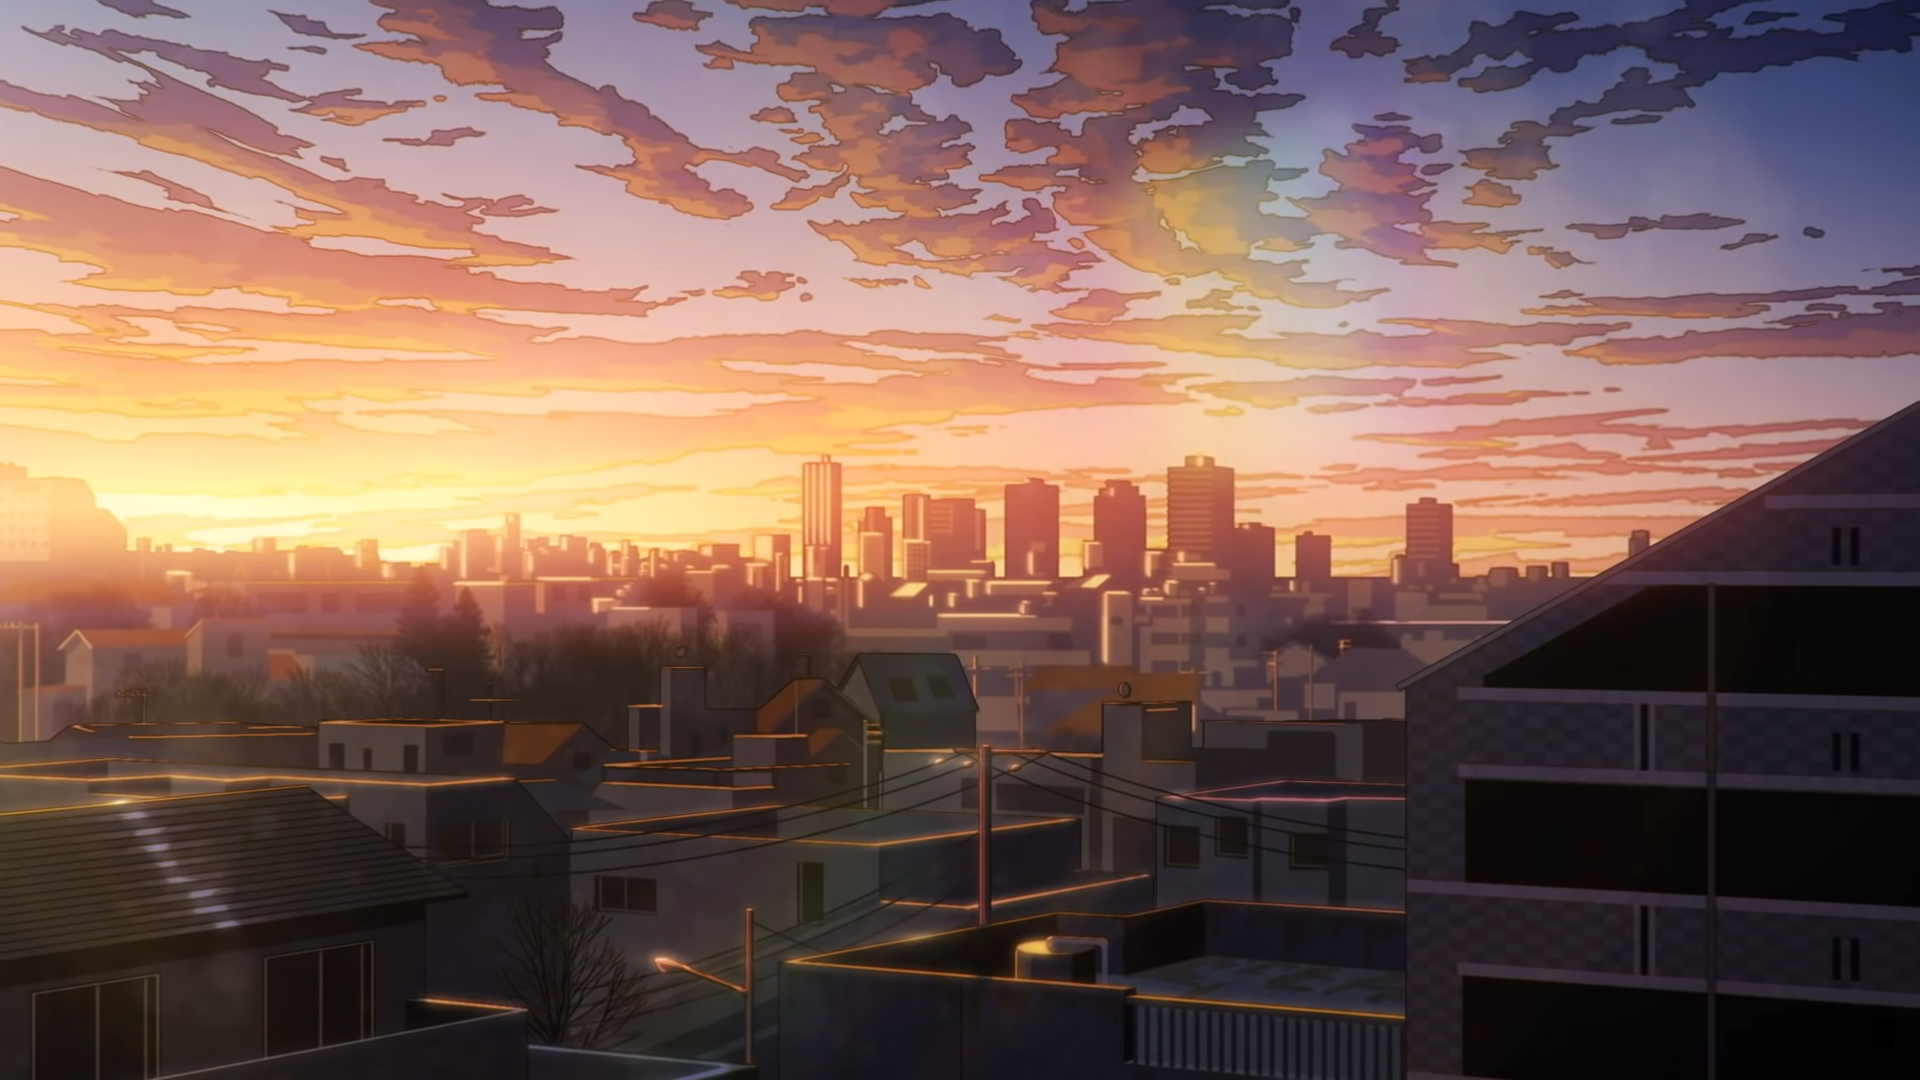 City Anime Sunset Tower Wallpapers - Wallpaper Cave